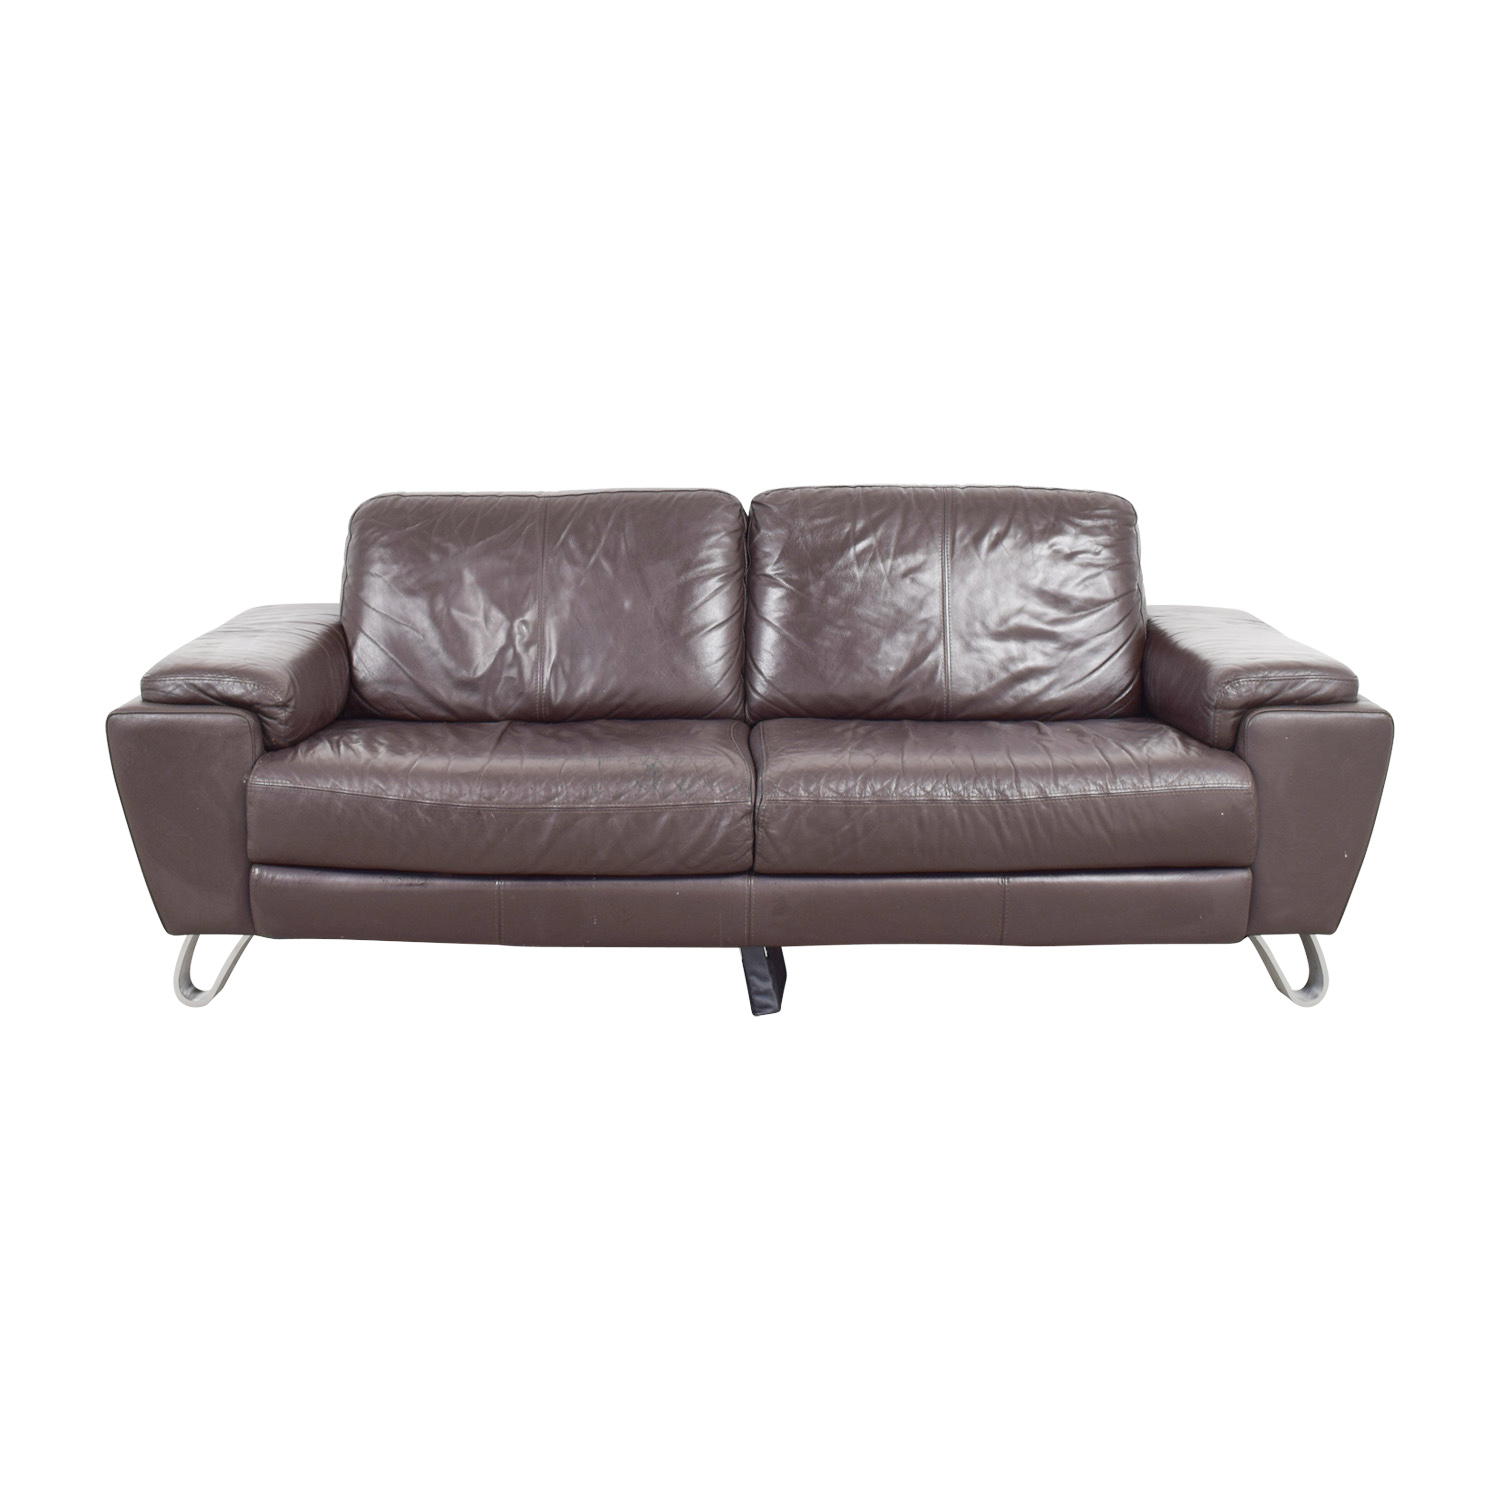 Michael Angelo Design Brown Leather Sofa / Sofas